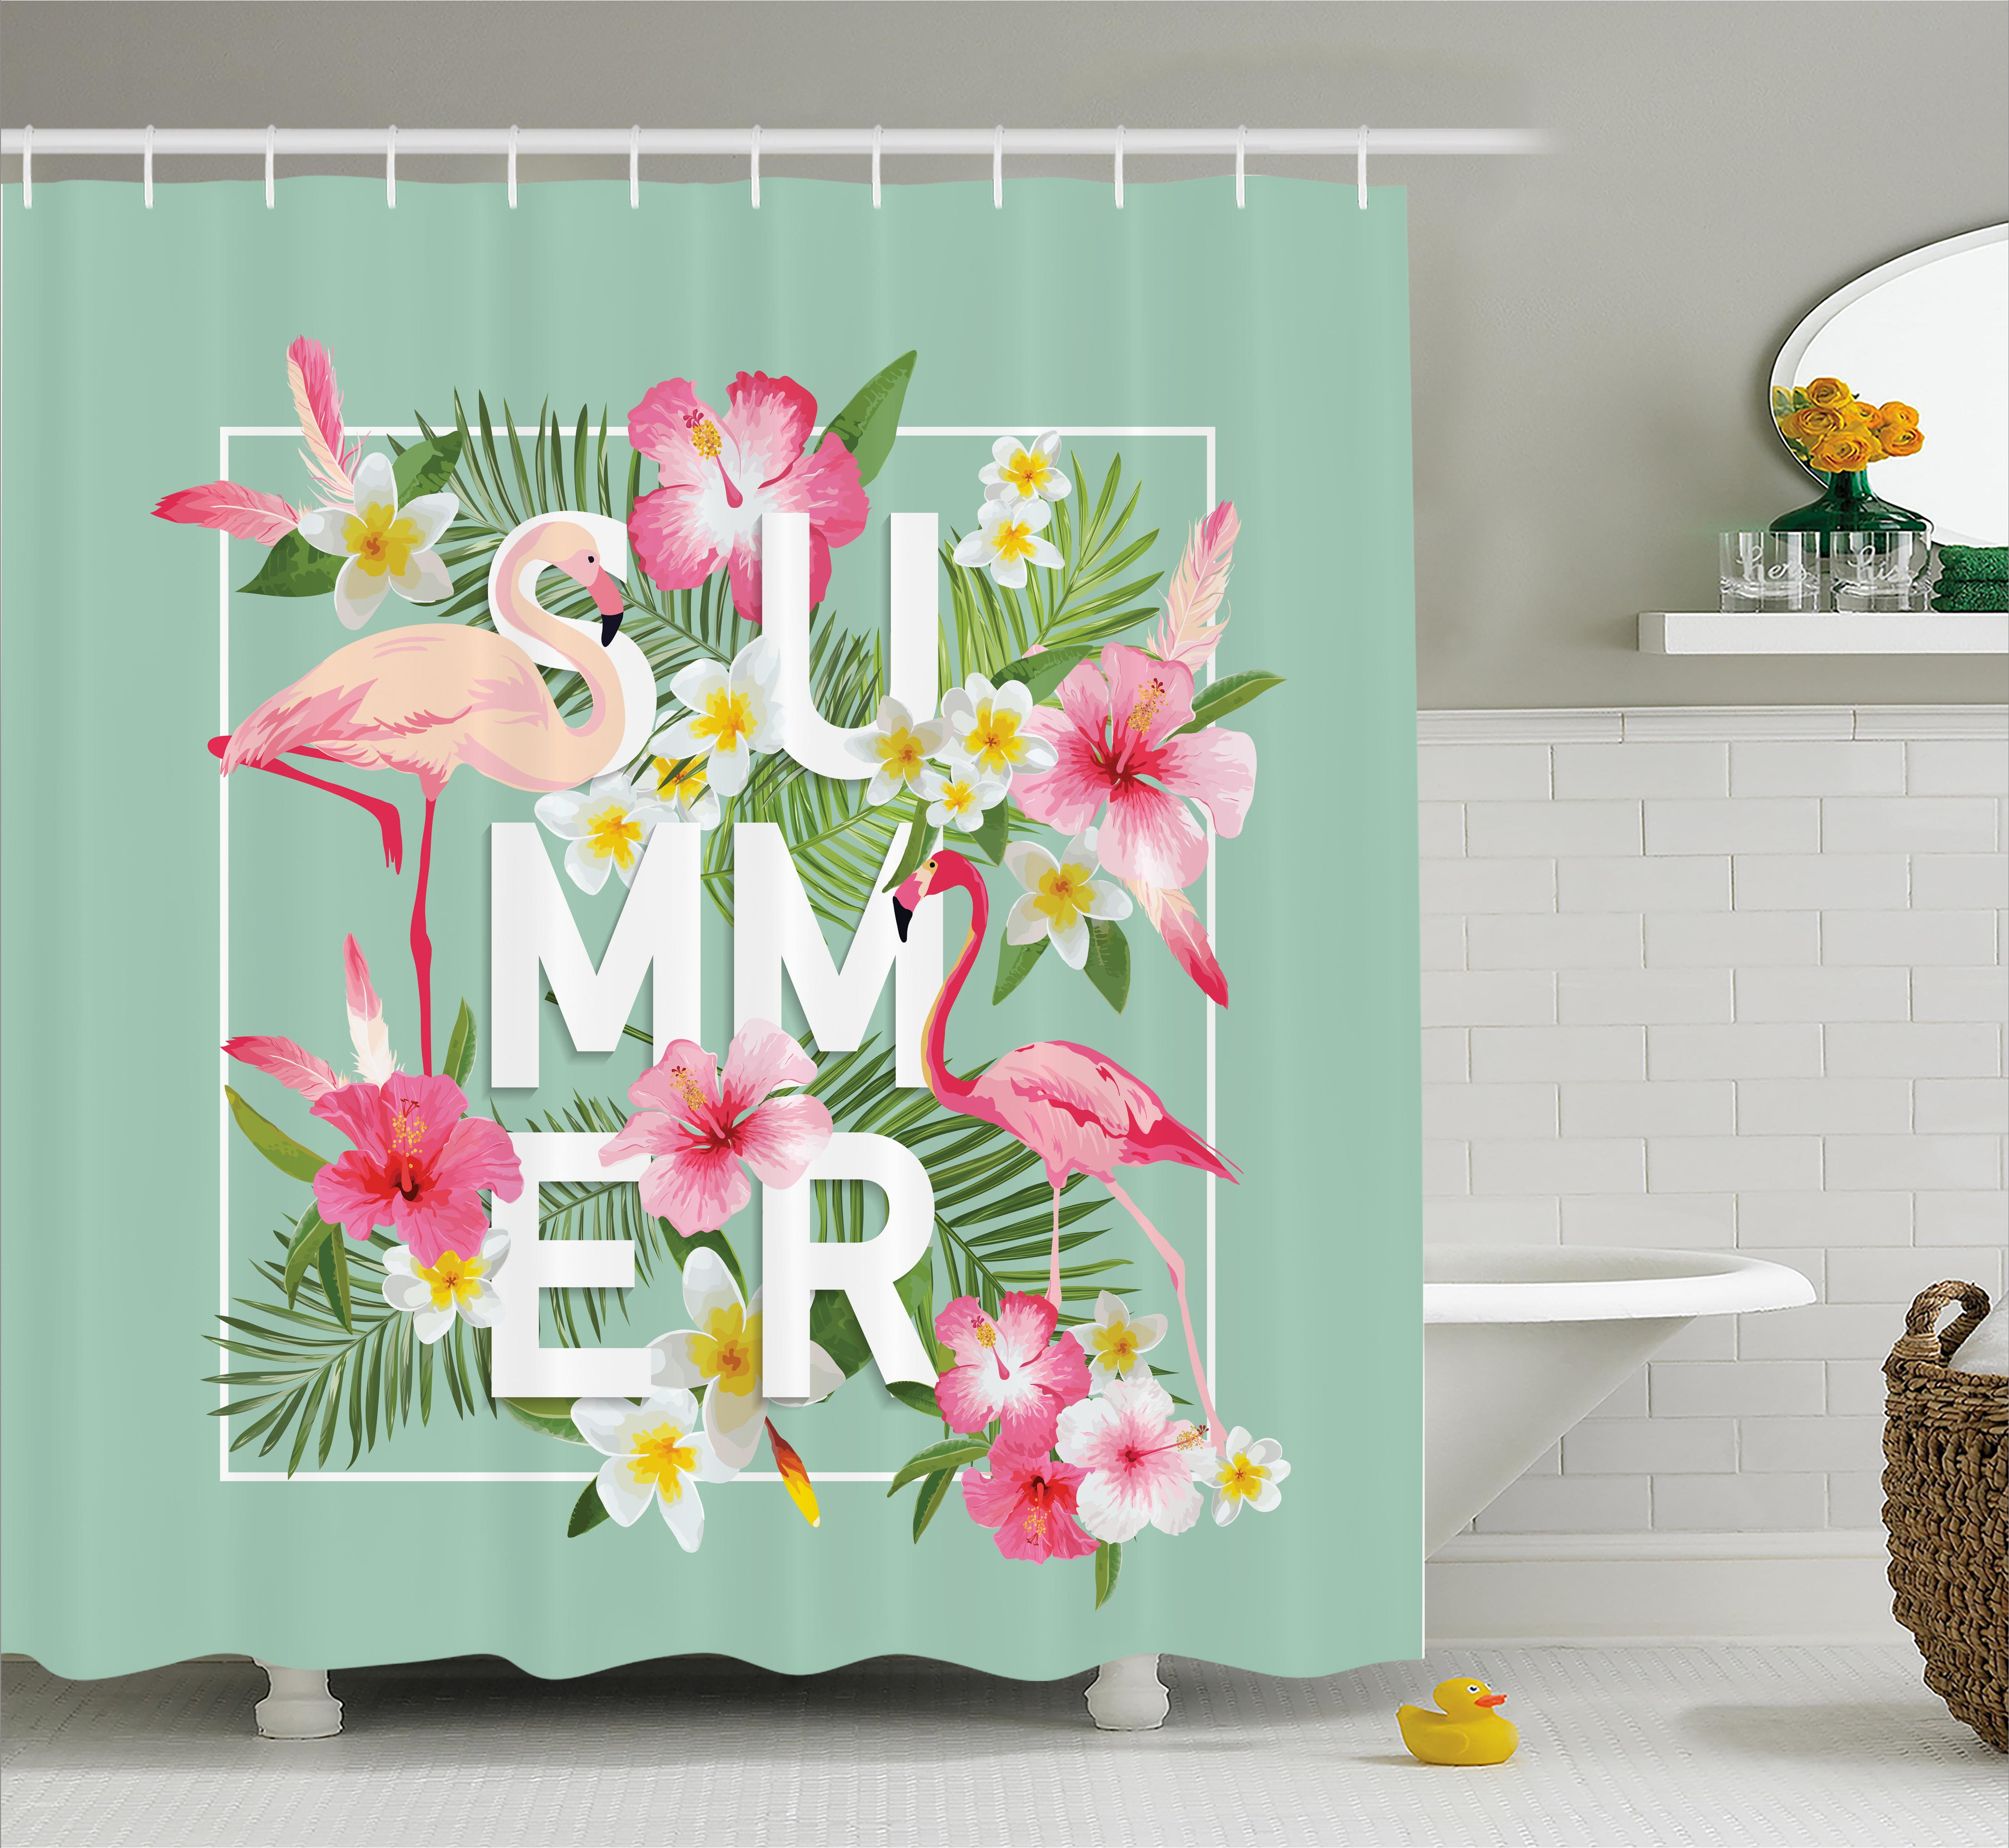 Floral Shower Curtain, Tropical Flower with Flamingos Retro Wedding Romance Petals Graphic Artwork, Fabric Bathroom Set with Hooks, 69W X 75L Inches Long, Mint Green Pink, by Ambesonne